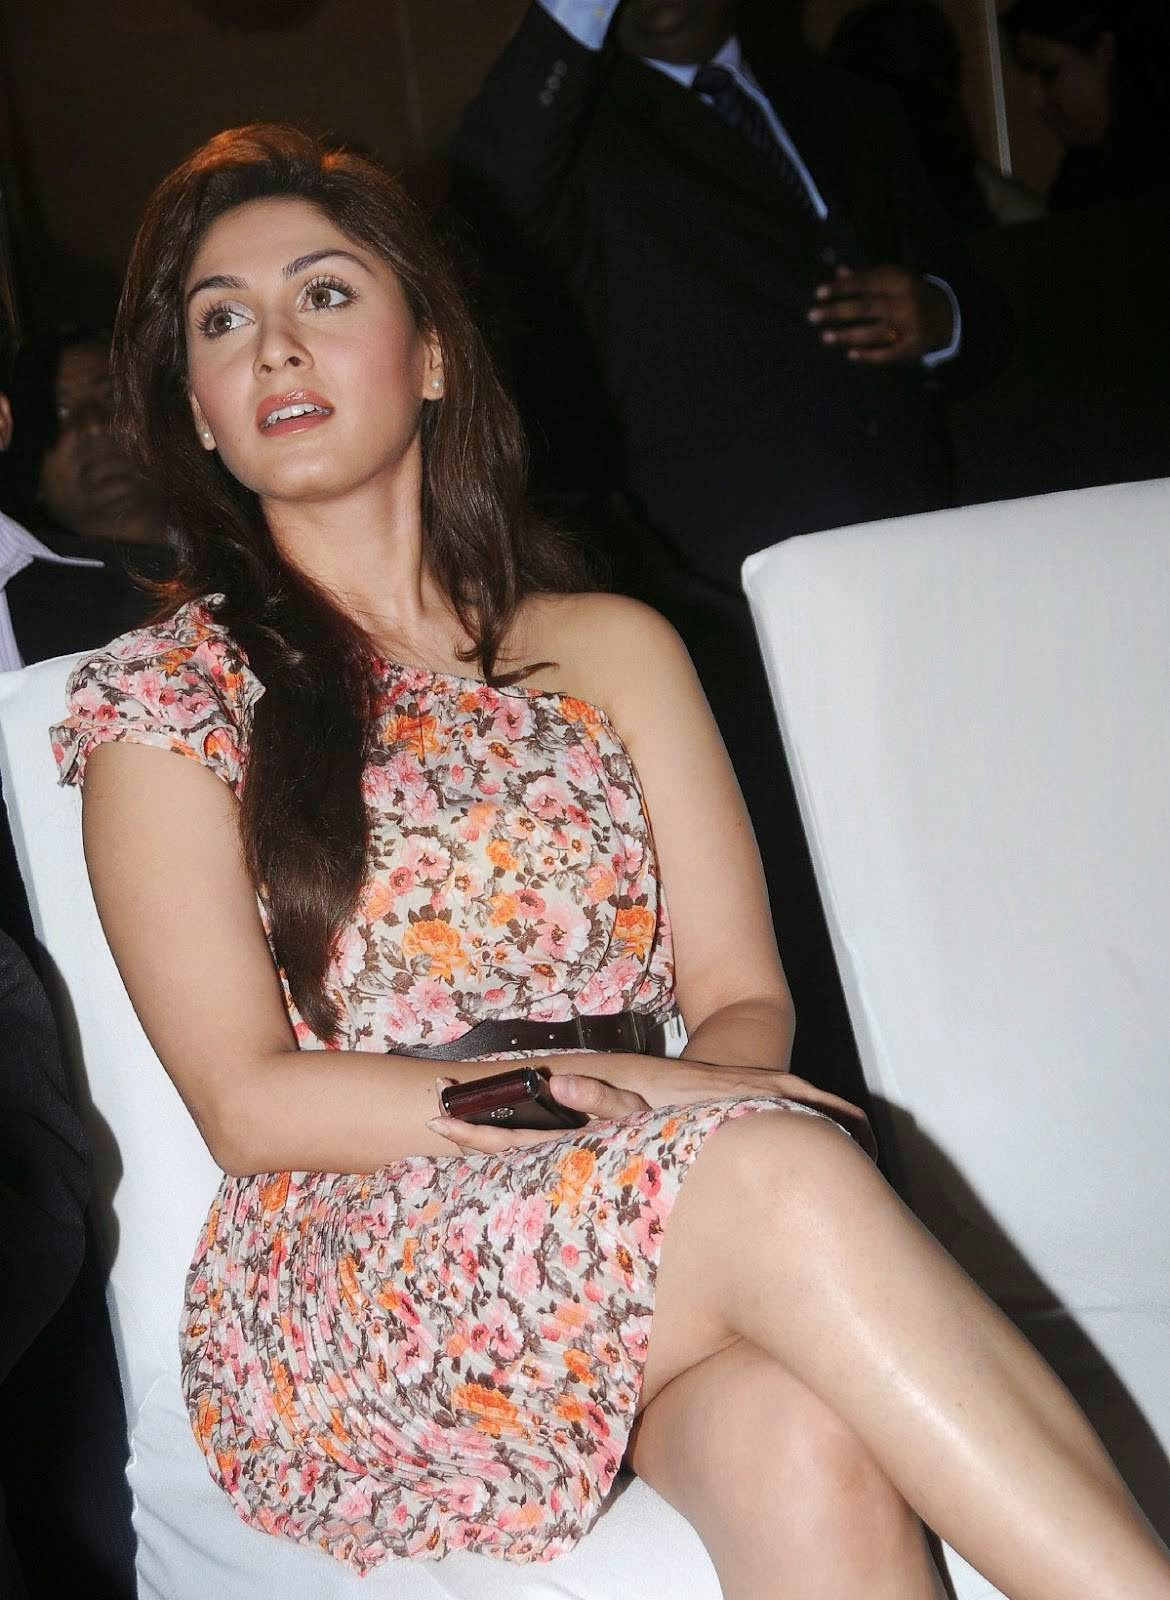 , Manjari Phadnis Sitting on Chair at events in Short Dress